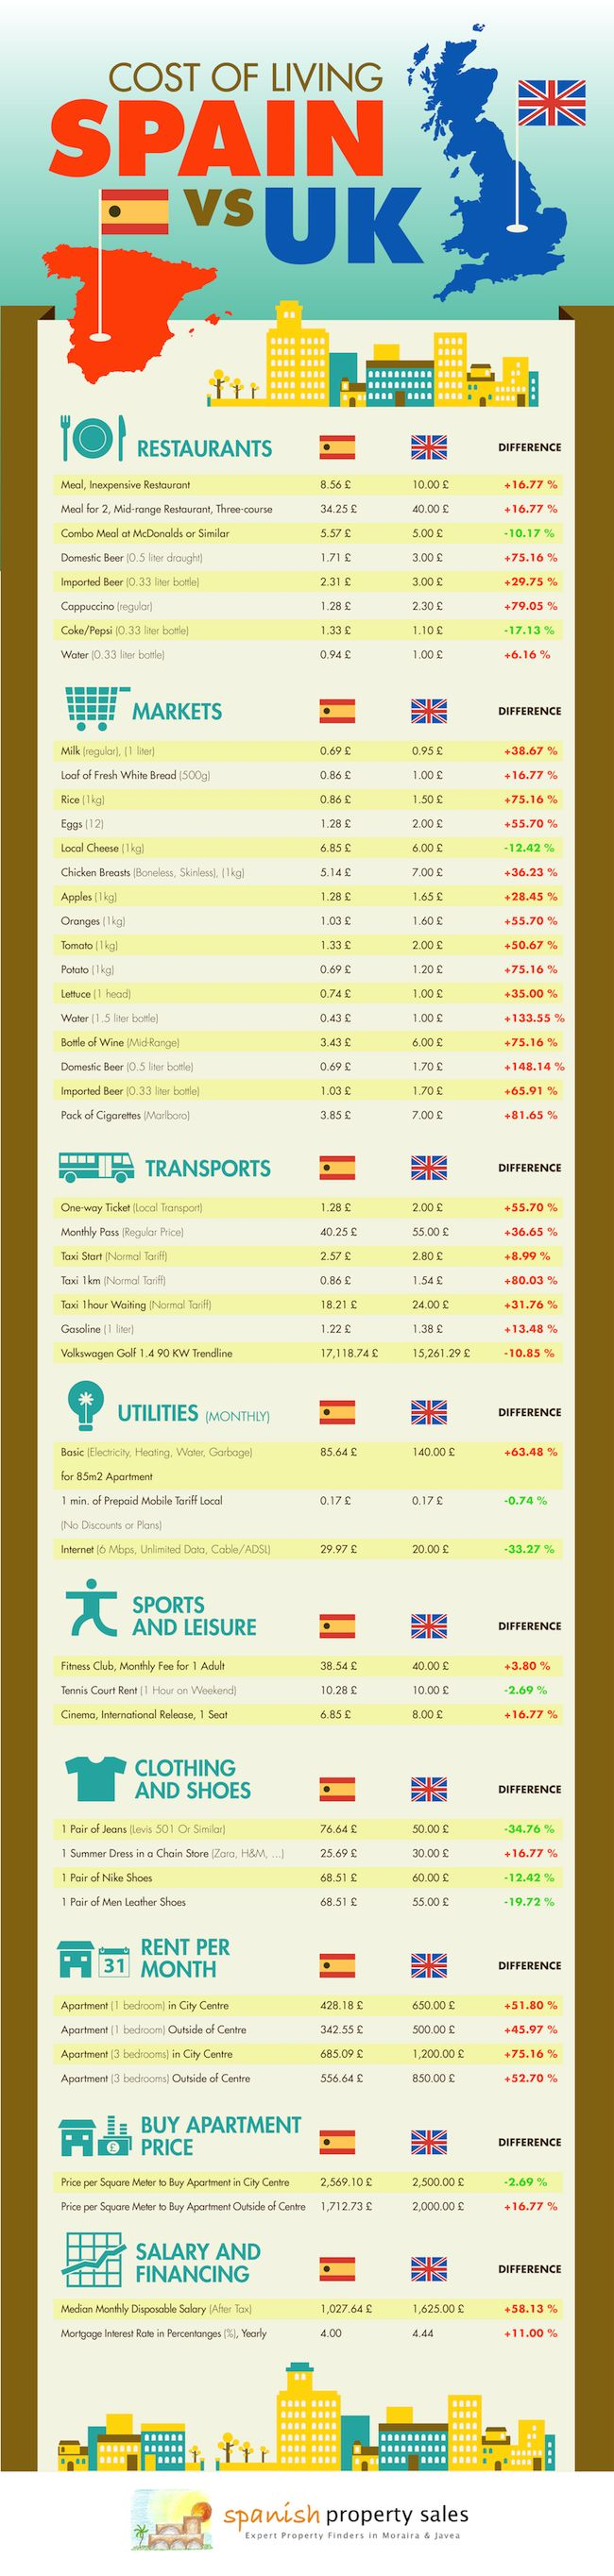 Cost of Living in Spain vs UK Infographic - Spanish Property